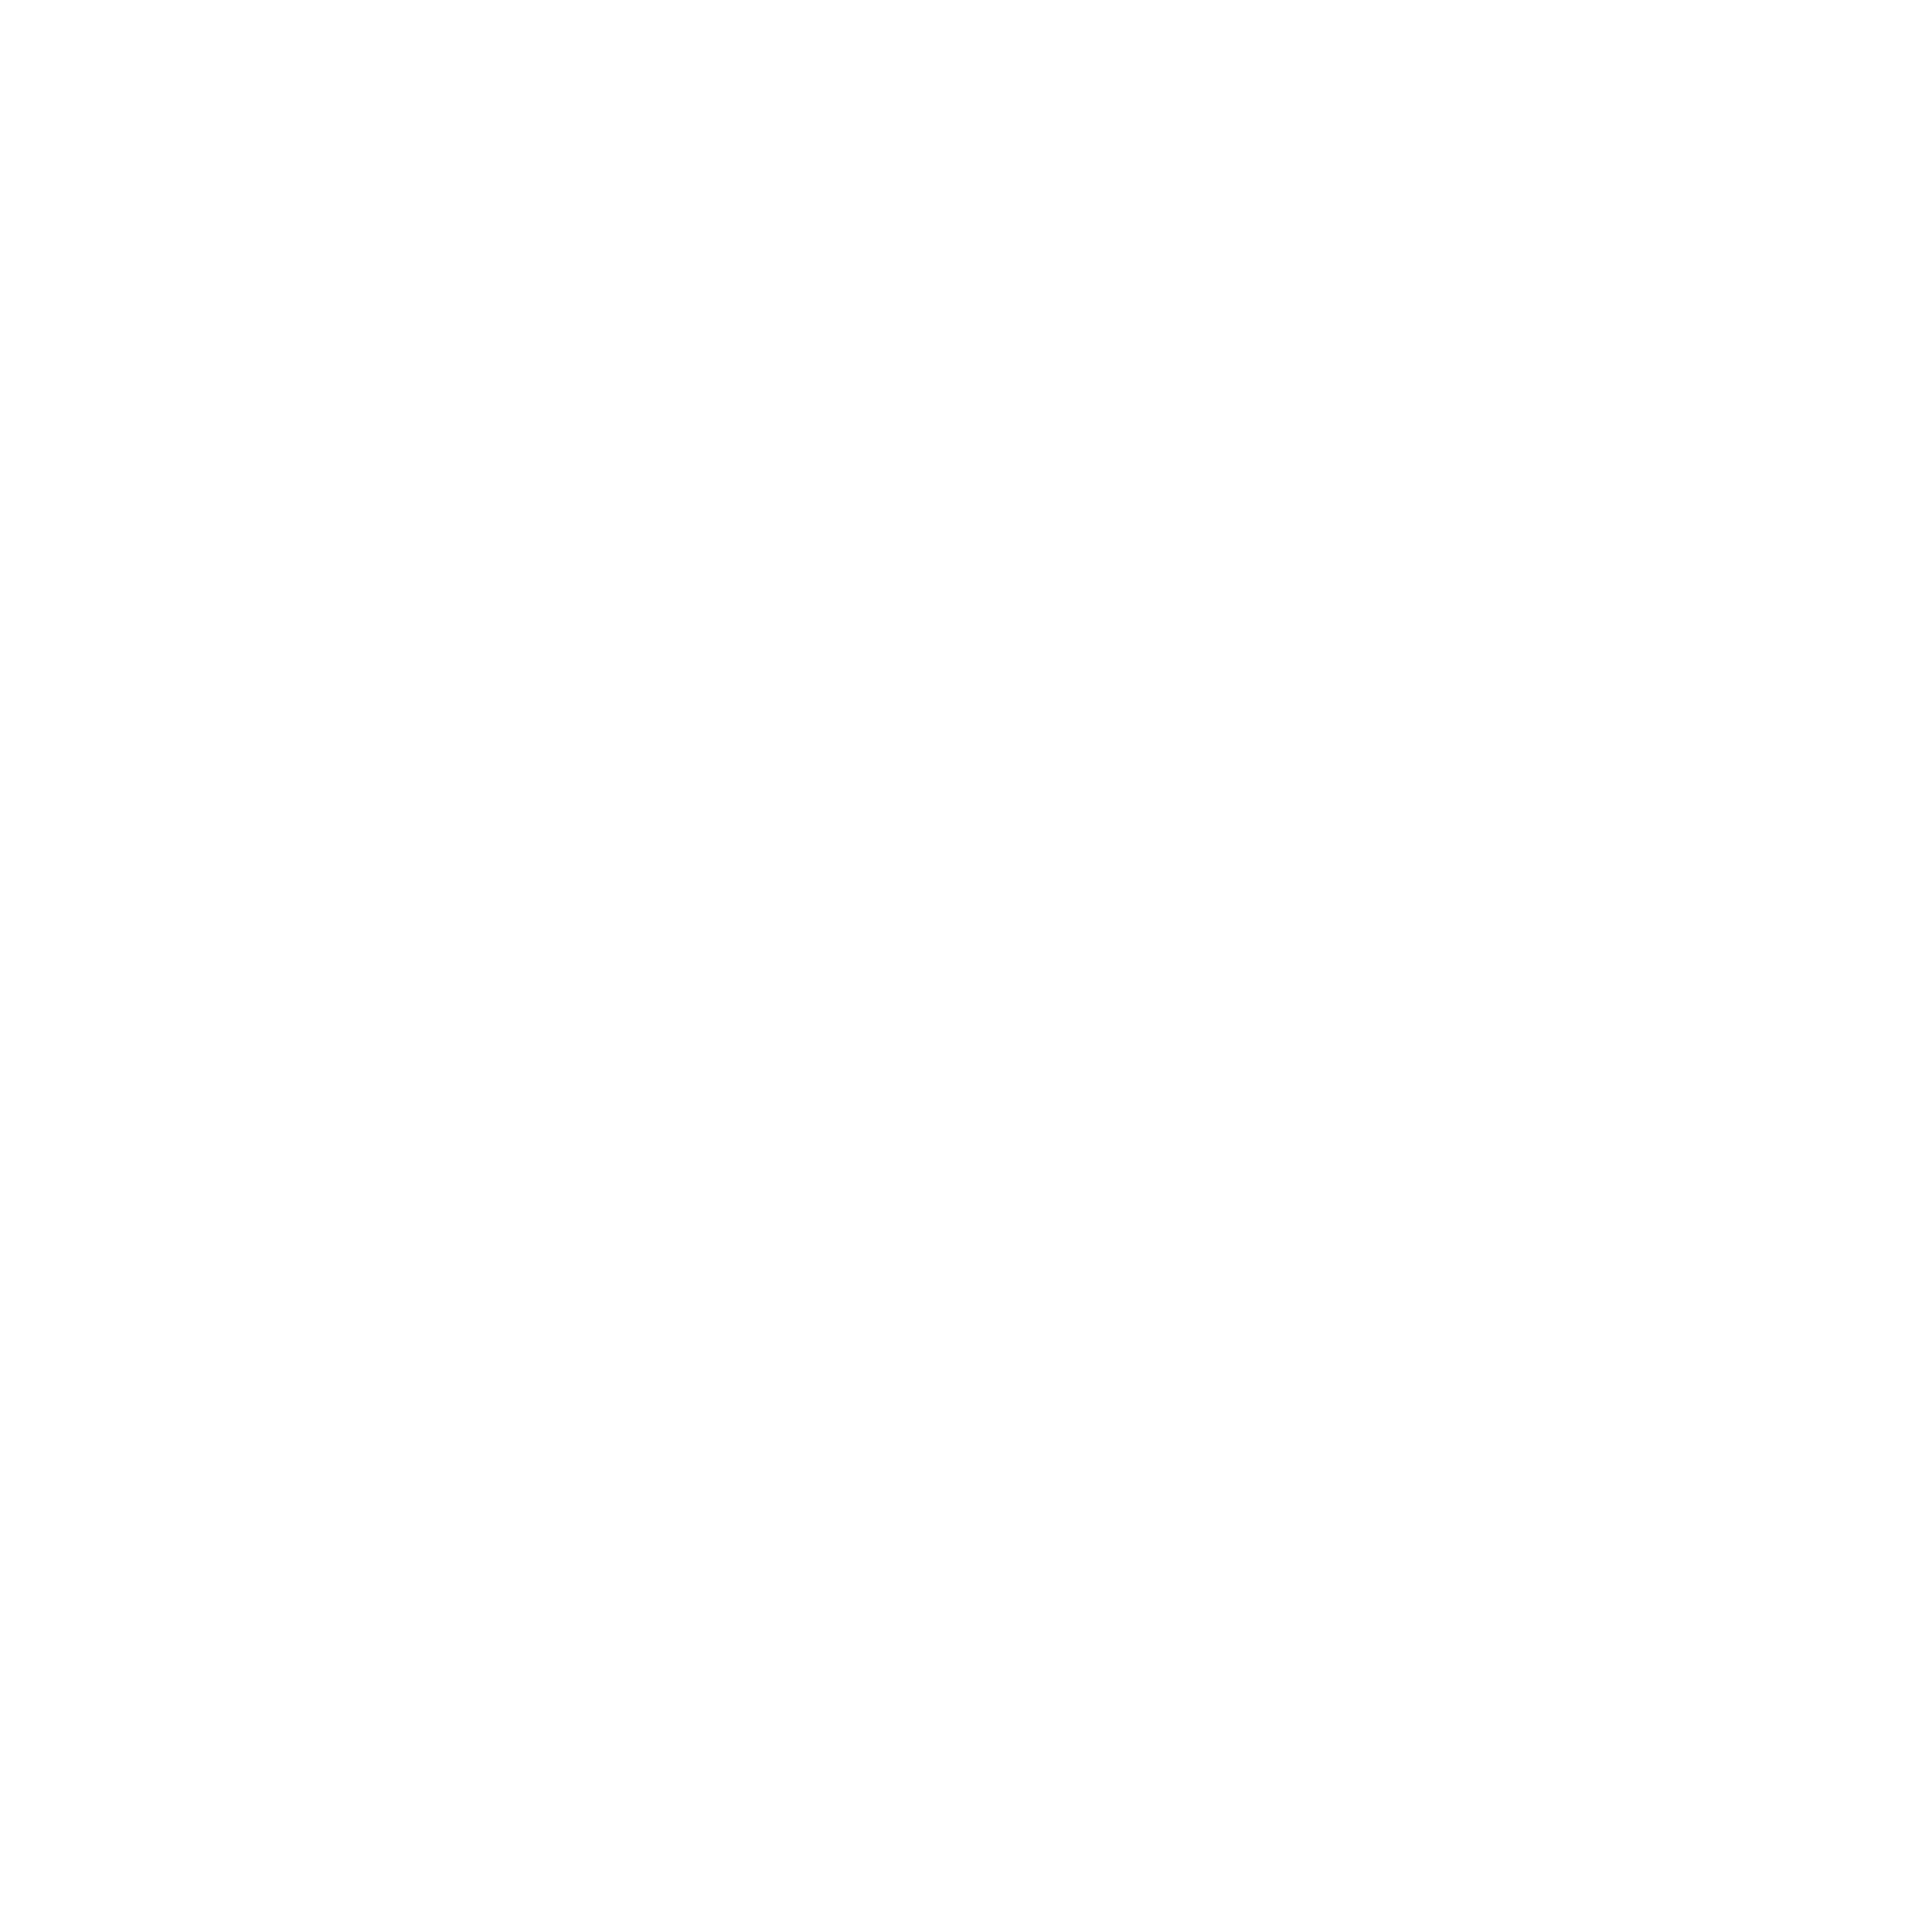 Downtown Frederick Wedding Walk